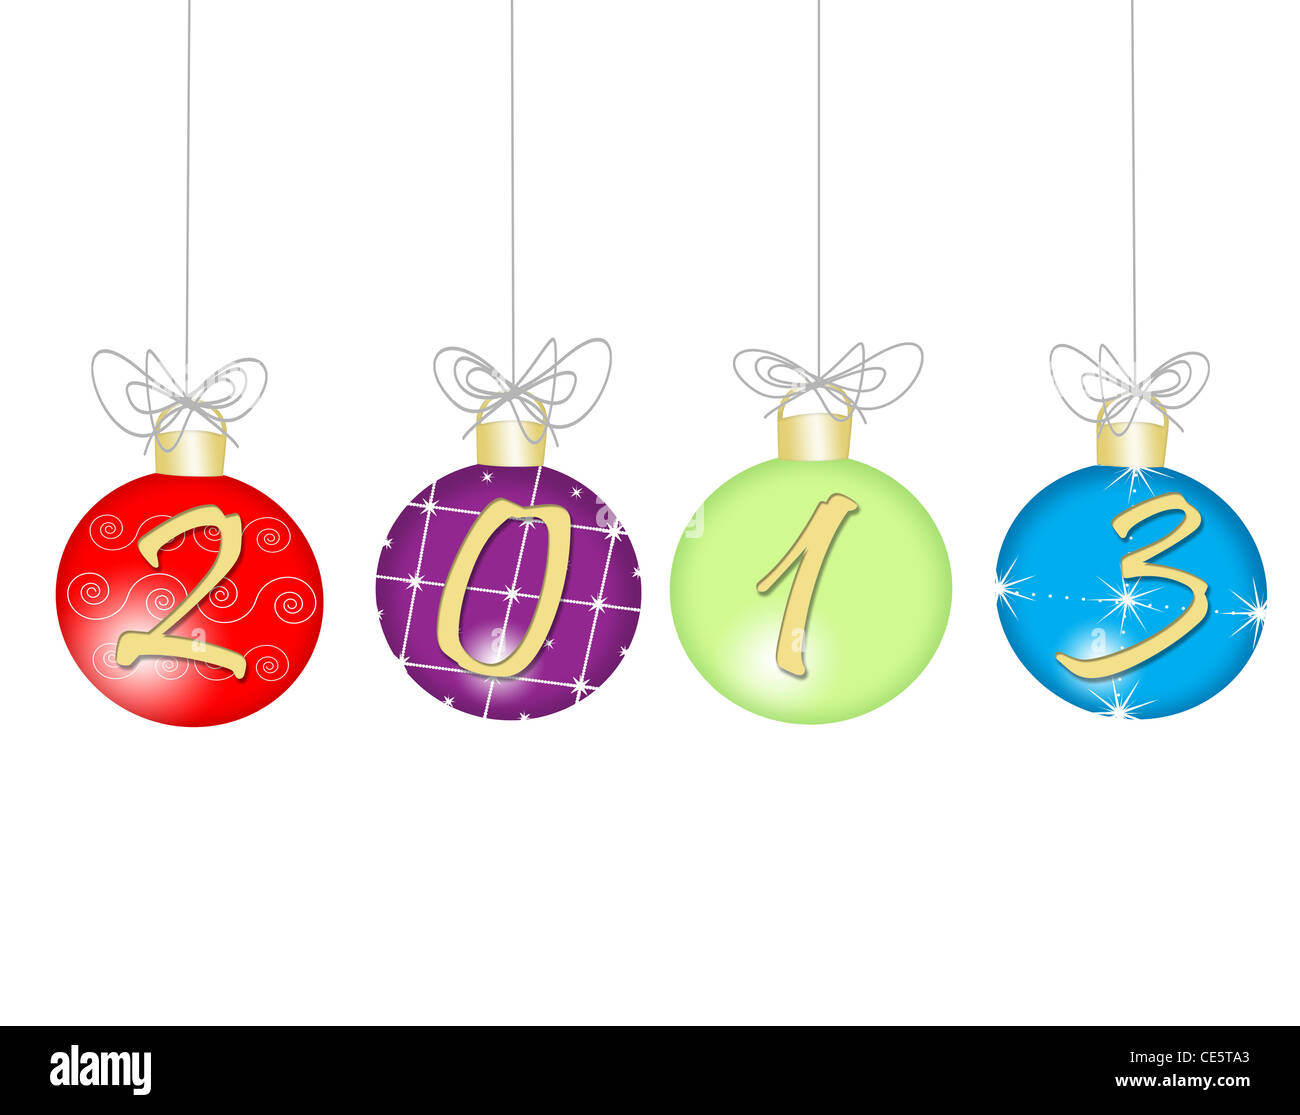 happy new year 2013 - Stock Image